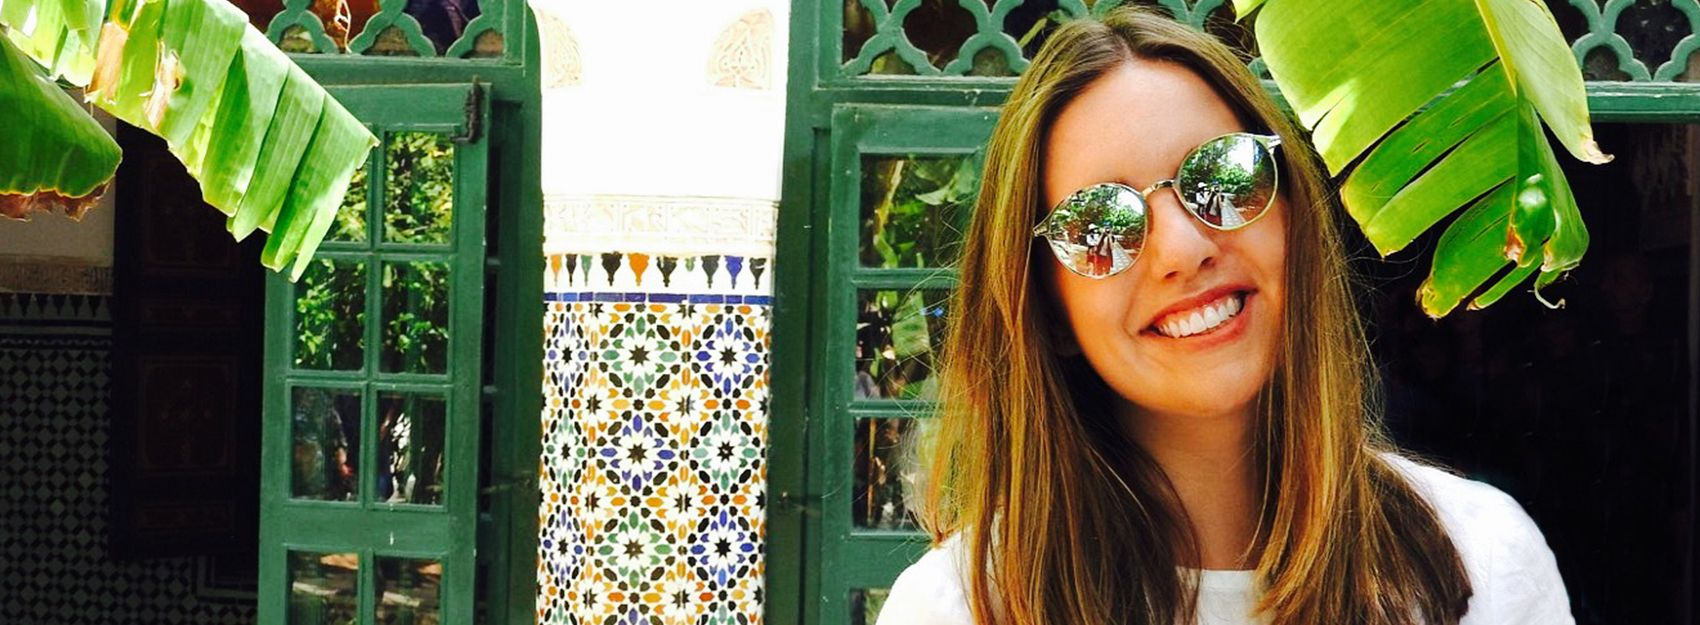 Rabat study abroad student in front green doors and mosaic art